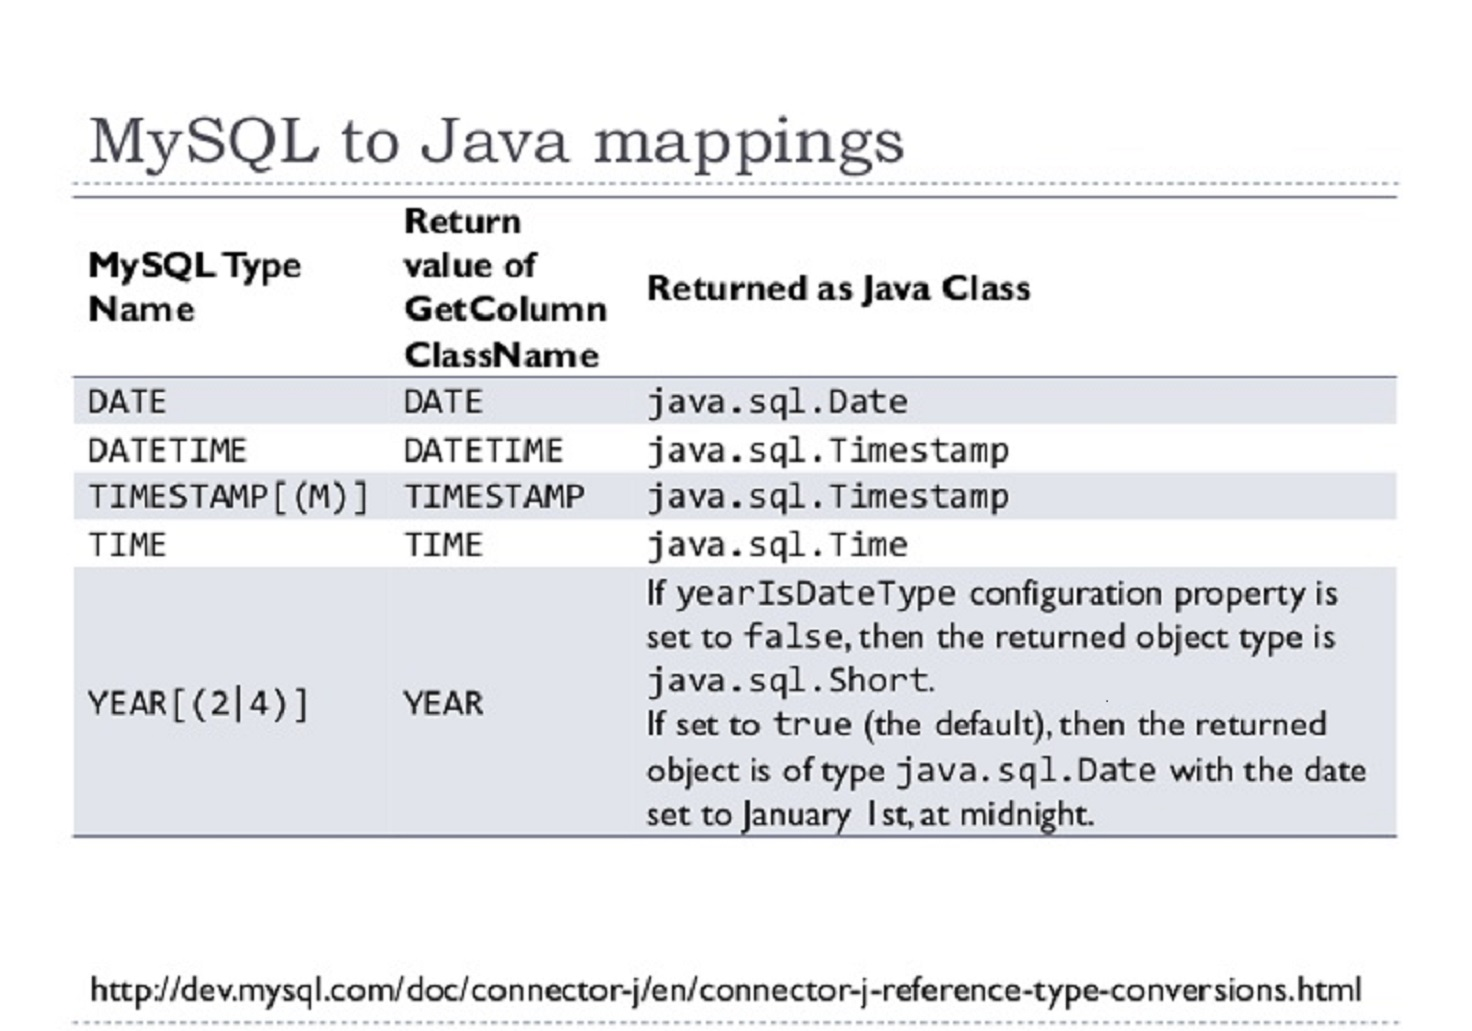 How to find number of months and year between two dates in Java 8?